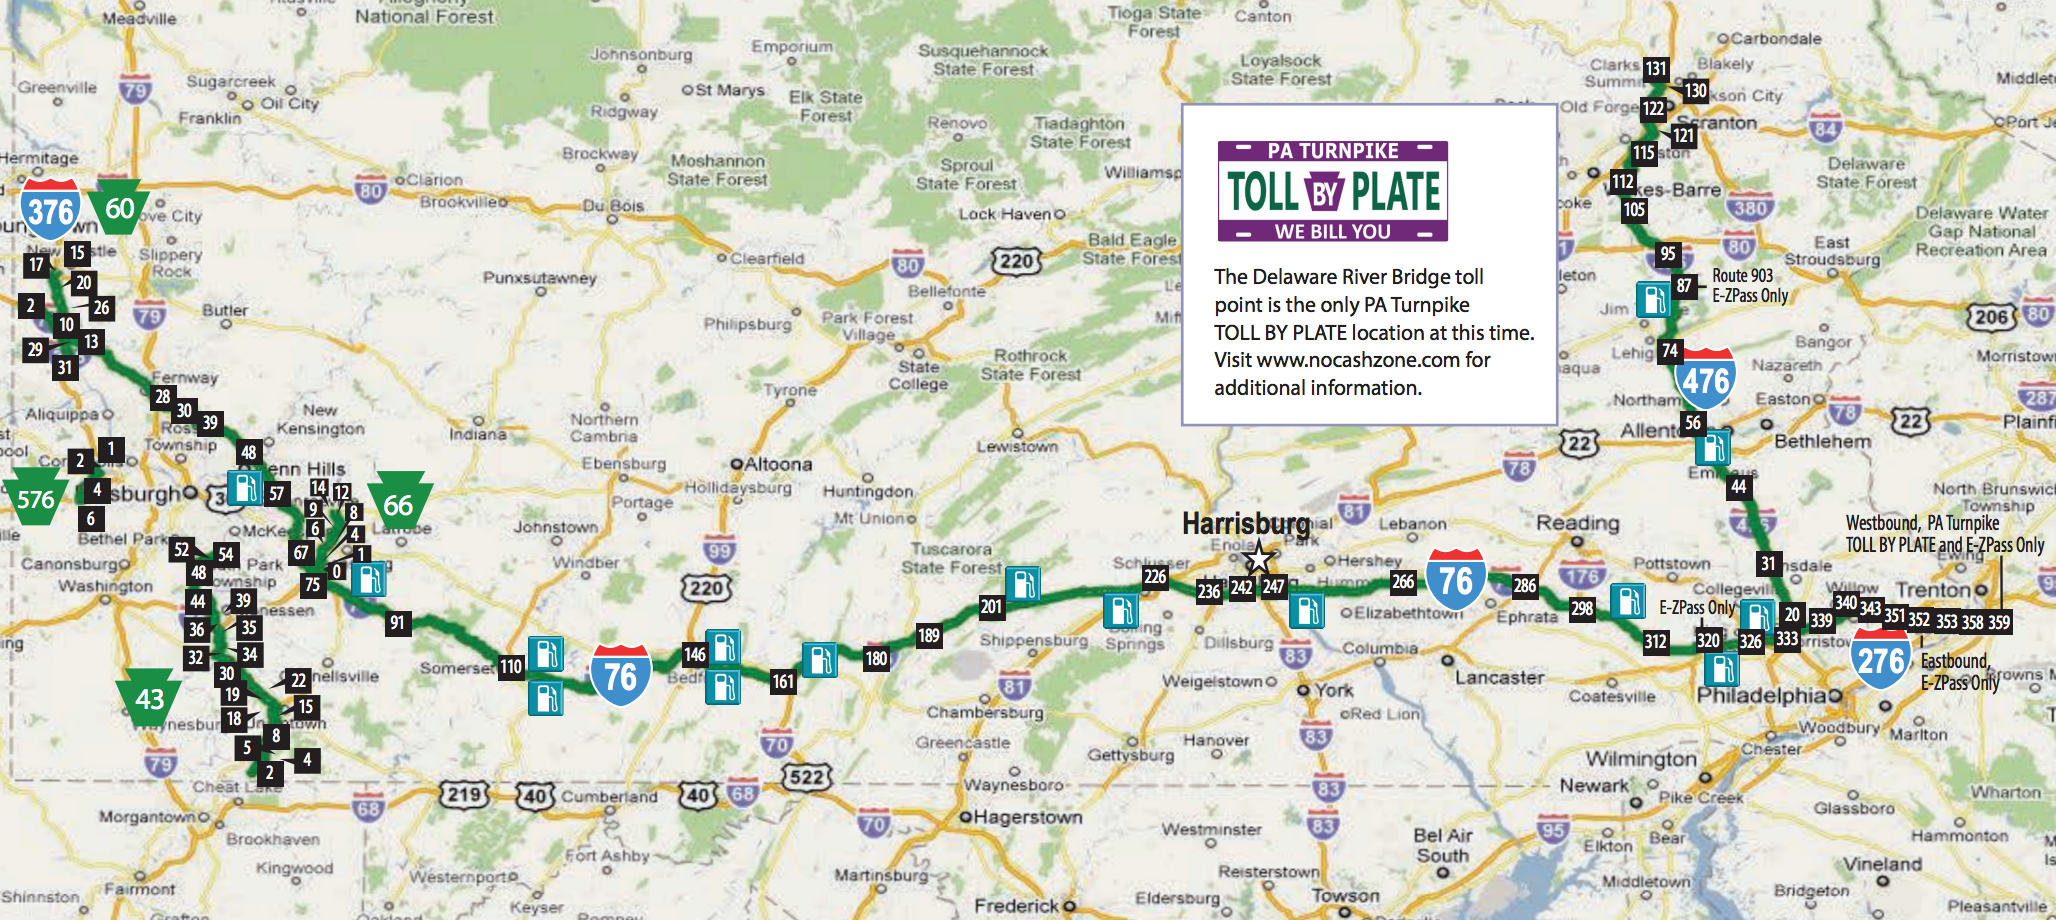 northeast ohio map with Tolls On Pennsylvania Turnpike on Cincinnati maps besides Man Releases Pictures Two Possible Bigfoot Creatures Michigan additionally Powhatan Tribe in addition Tolls On Pennsylvania Turnpike as well What is a temperature inversion.